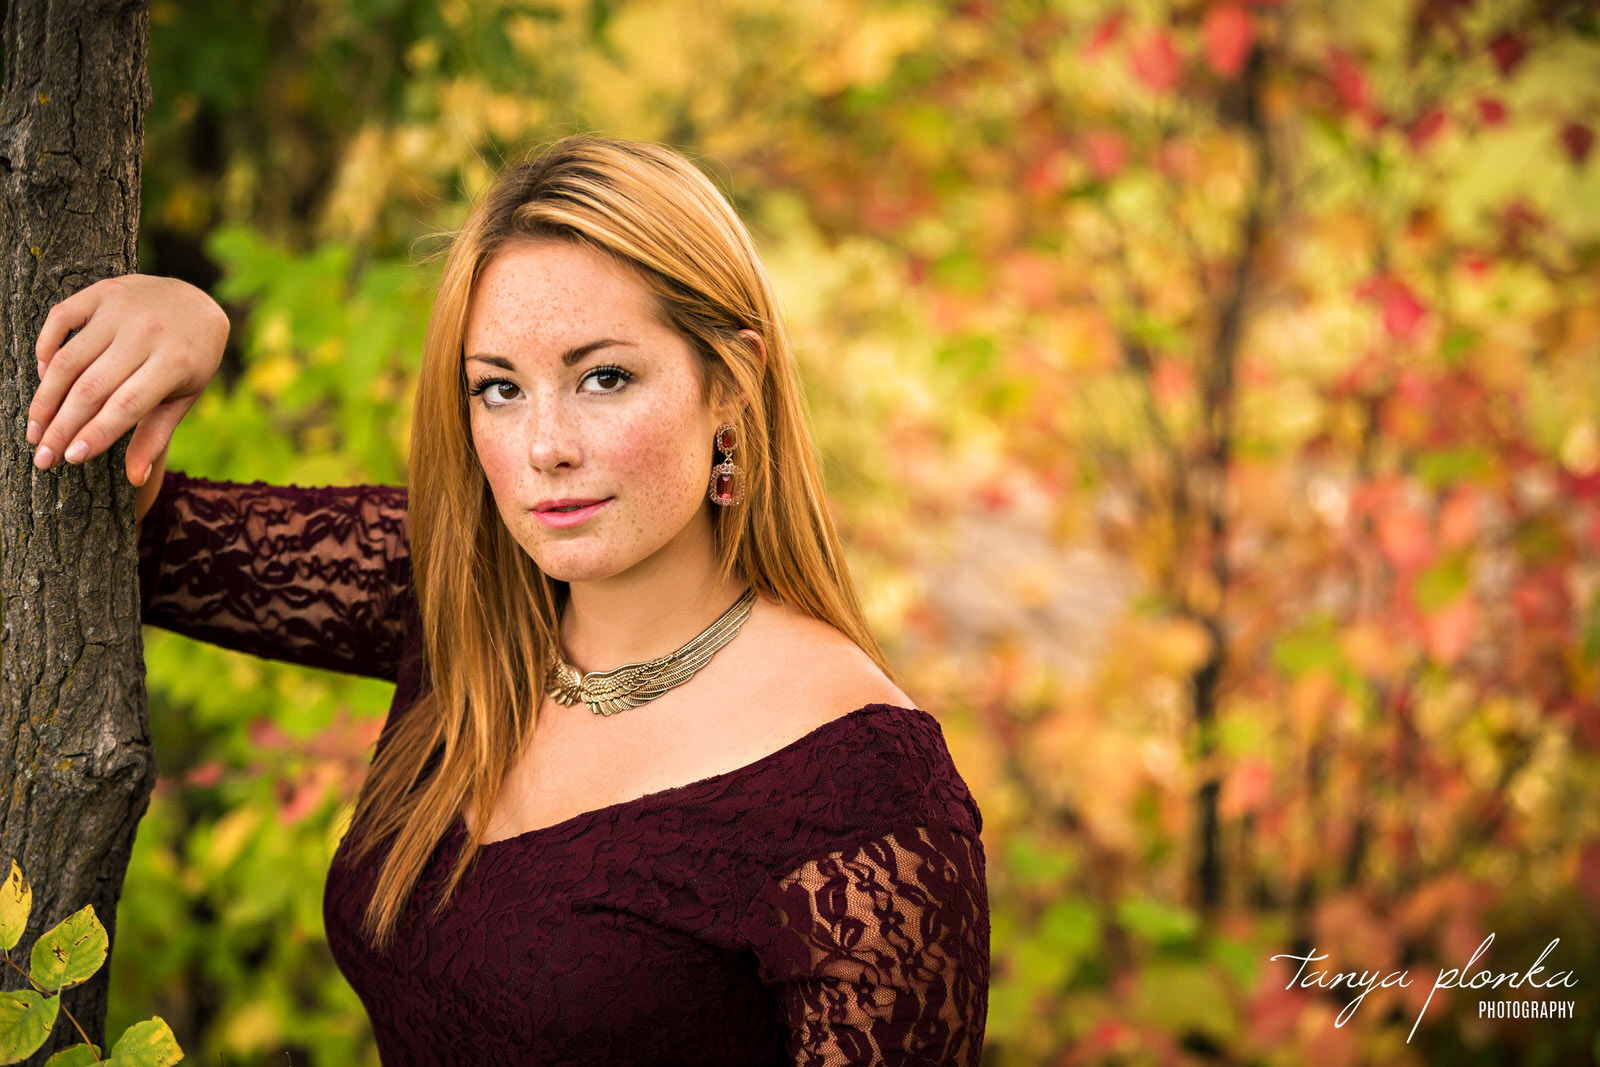 woman in maroon dress leans on tree with autumn colors in background